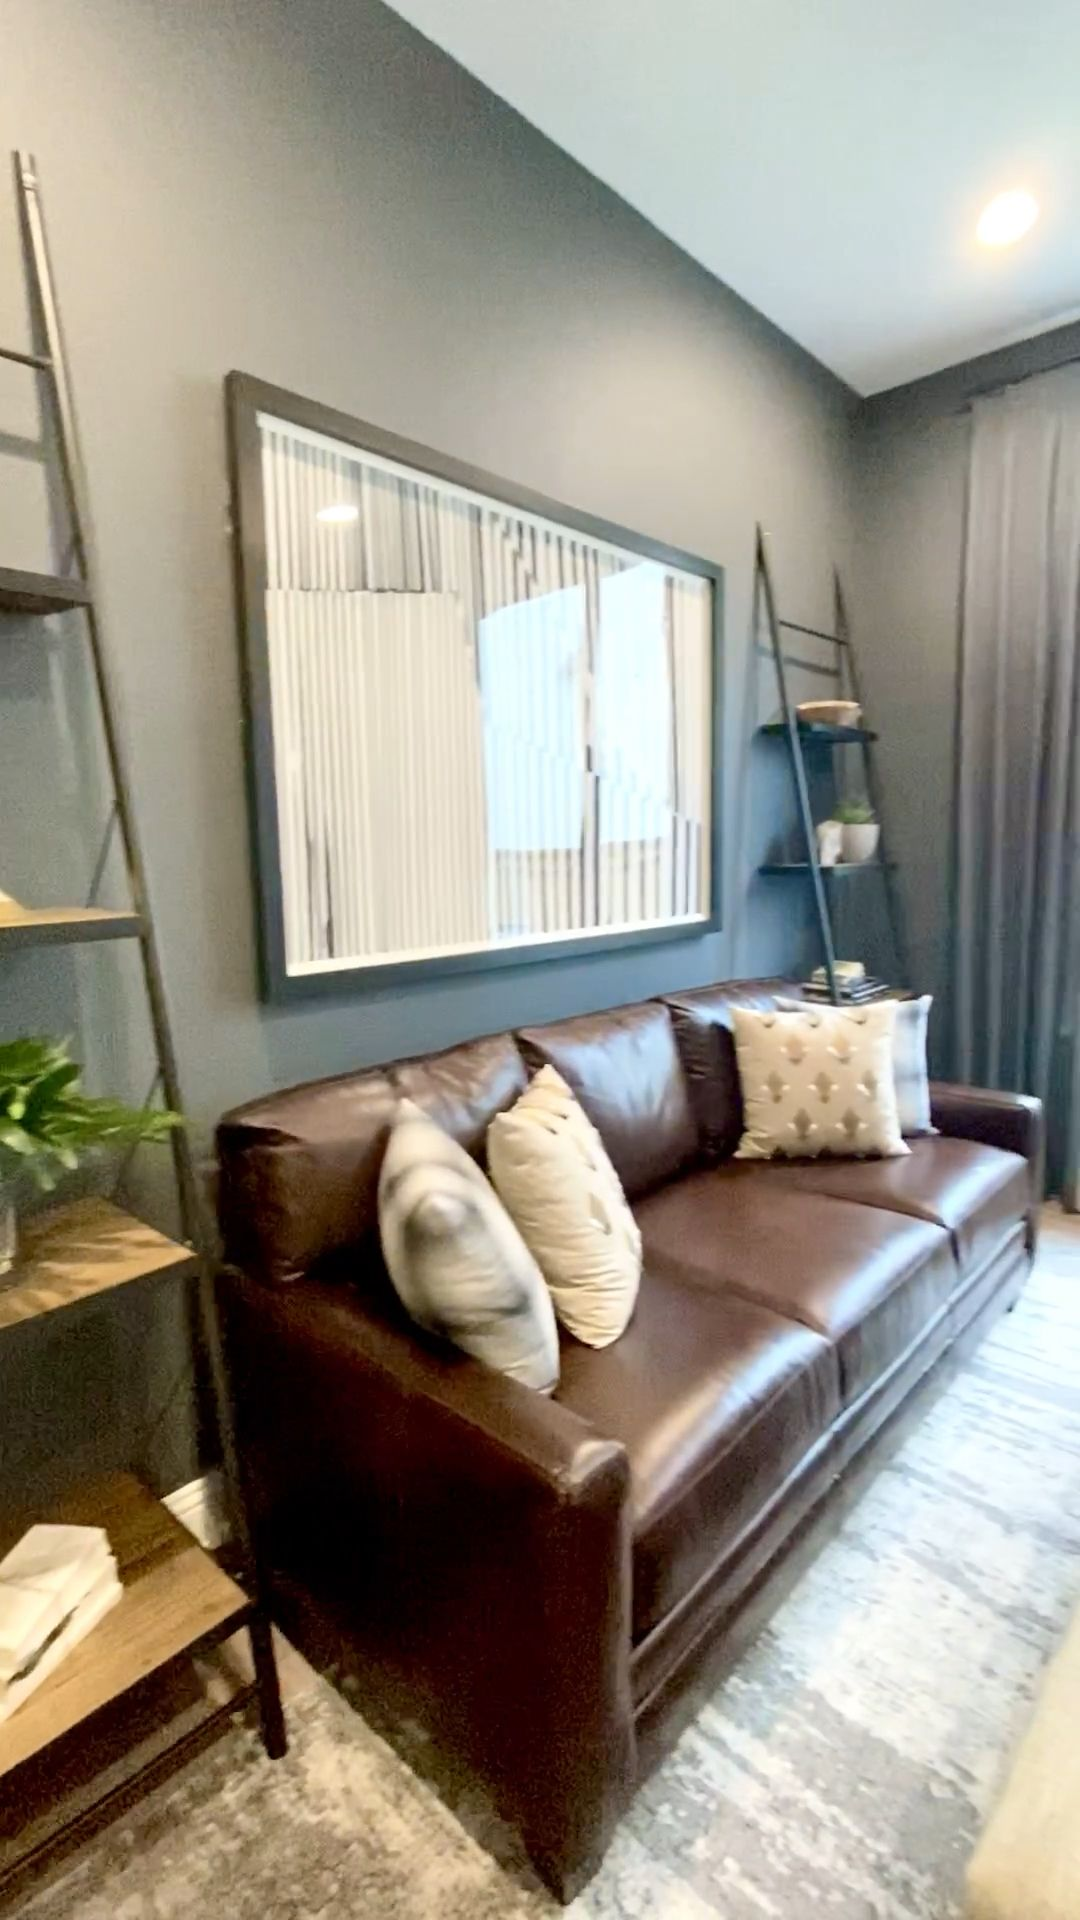 How to Decorate your own home or Stage your home to sell